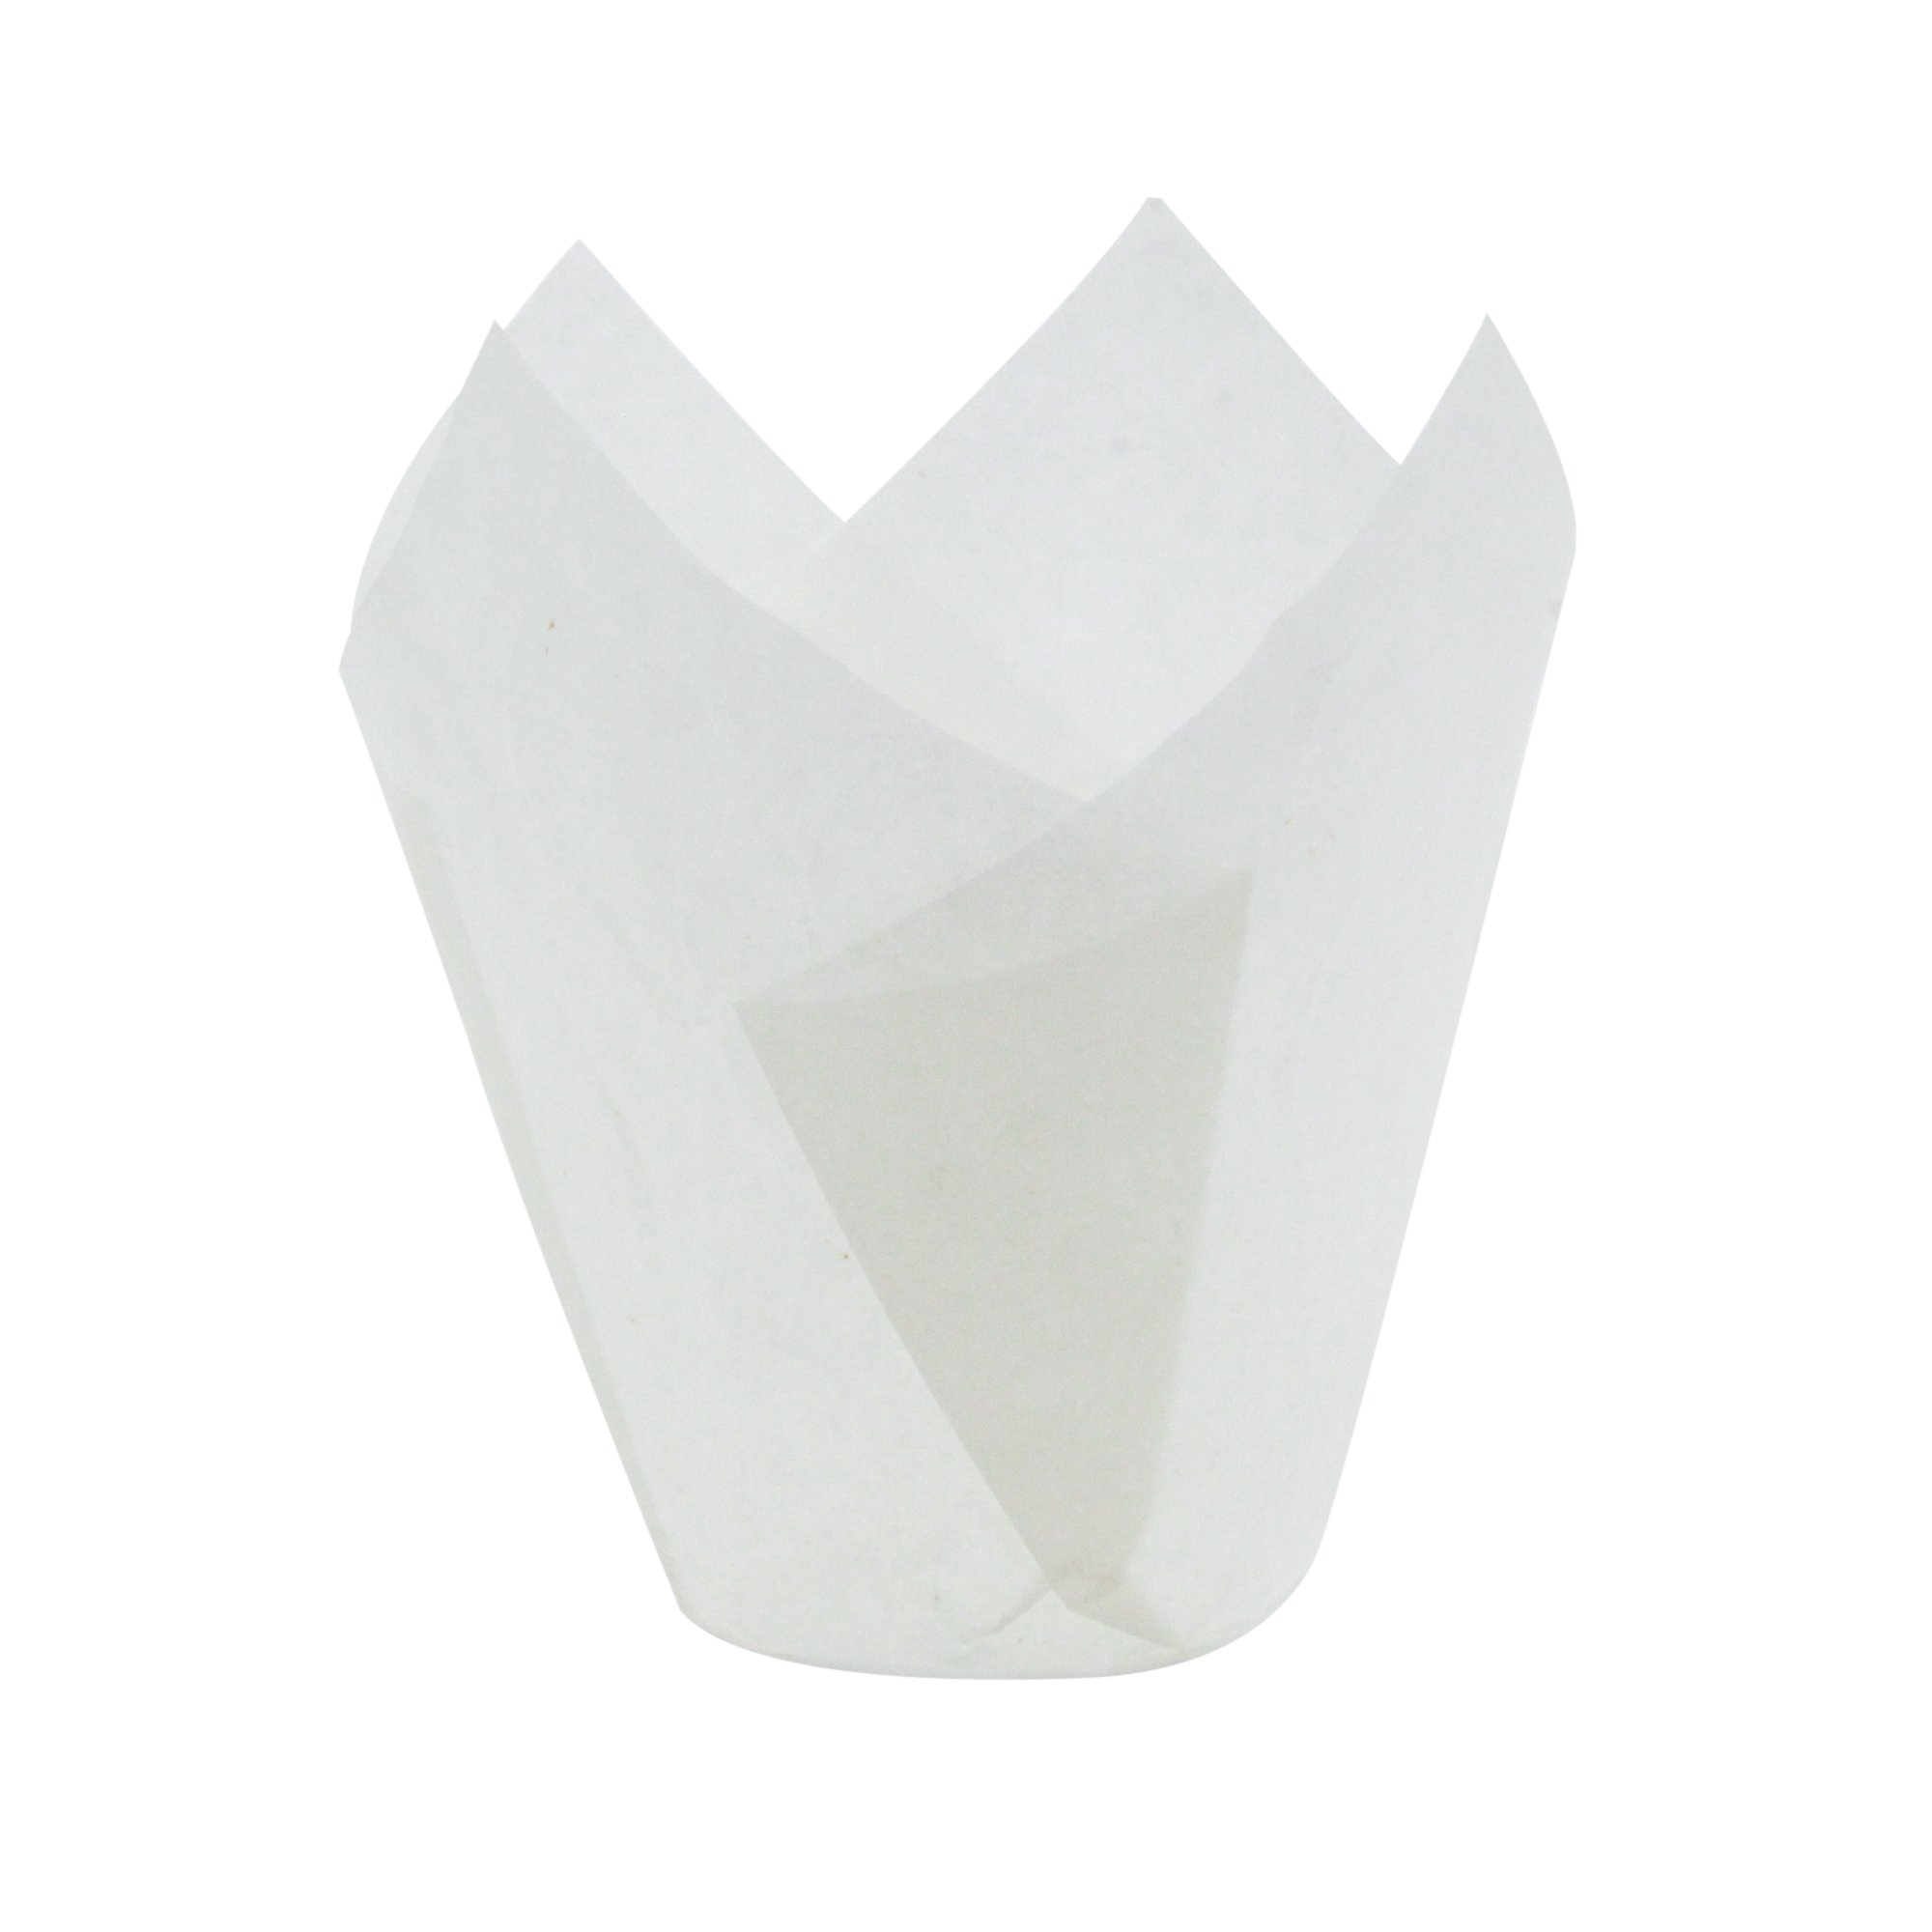 White Tulip Baking Cups, Mini Size, Pack of 1000